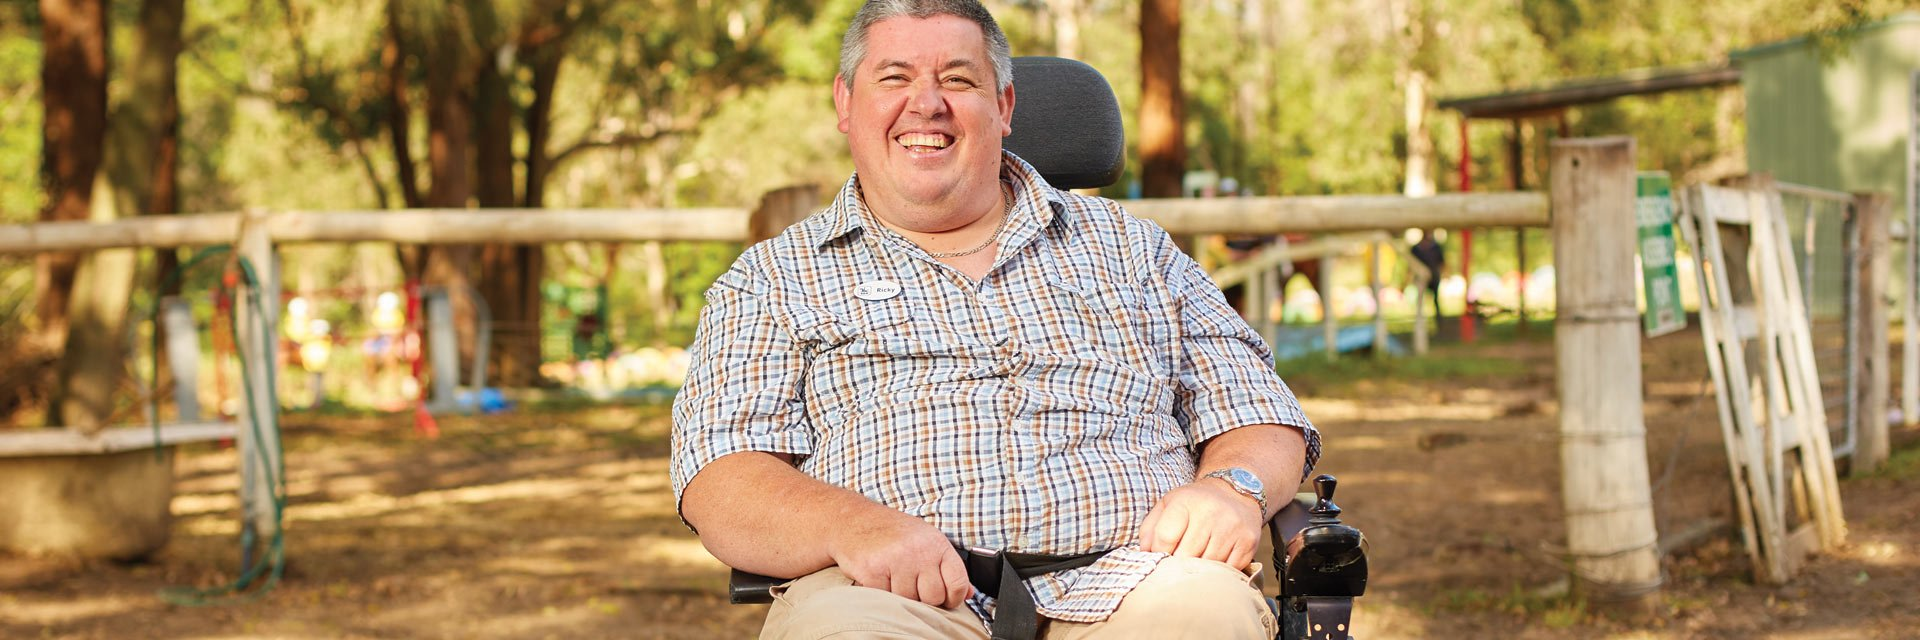 Man with a disability in an NDIS support